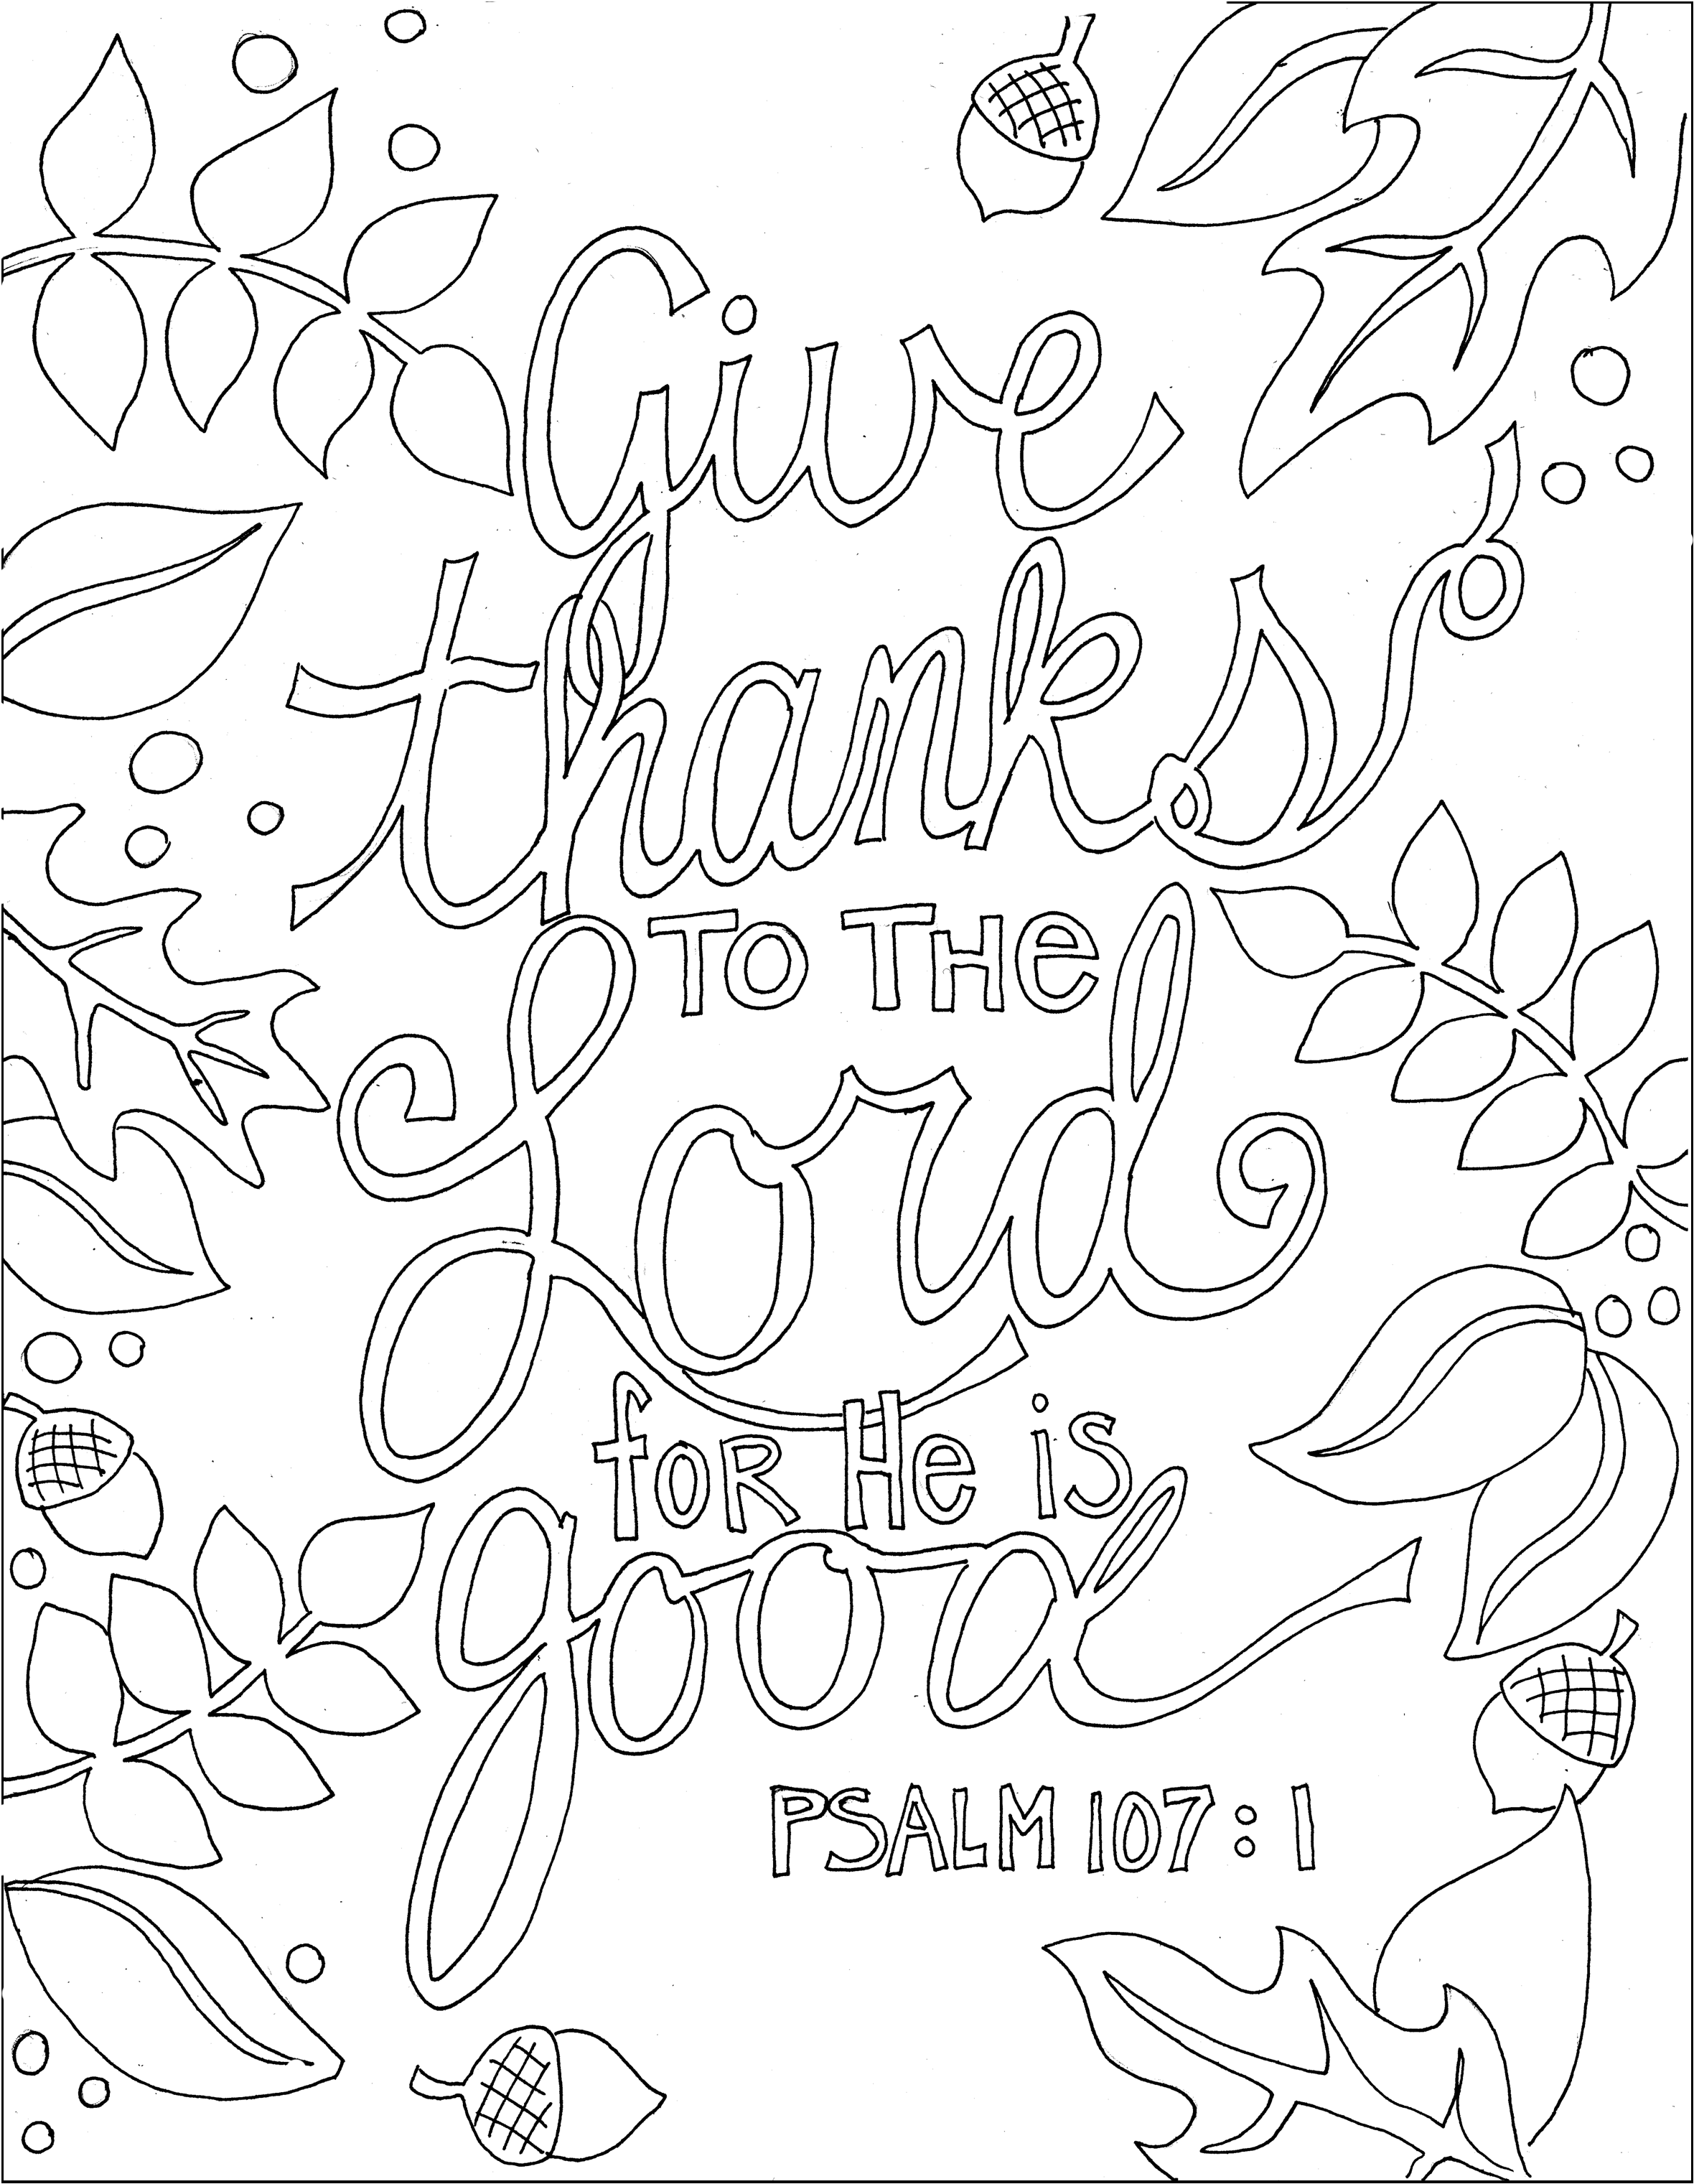 FREE Printable Christian Religious Adult Coloring Sheets W Bible Verses Everyone Says It Is A